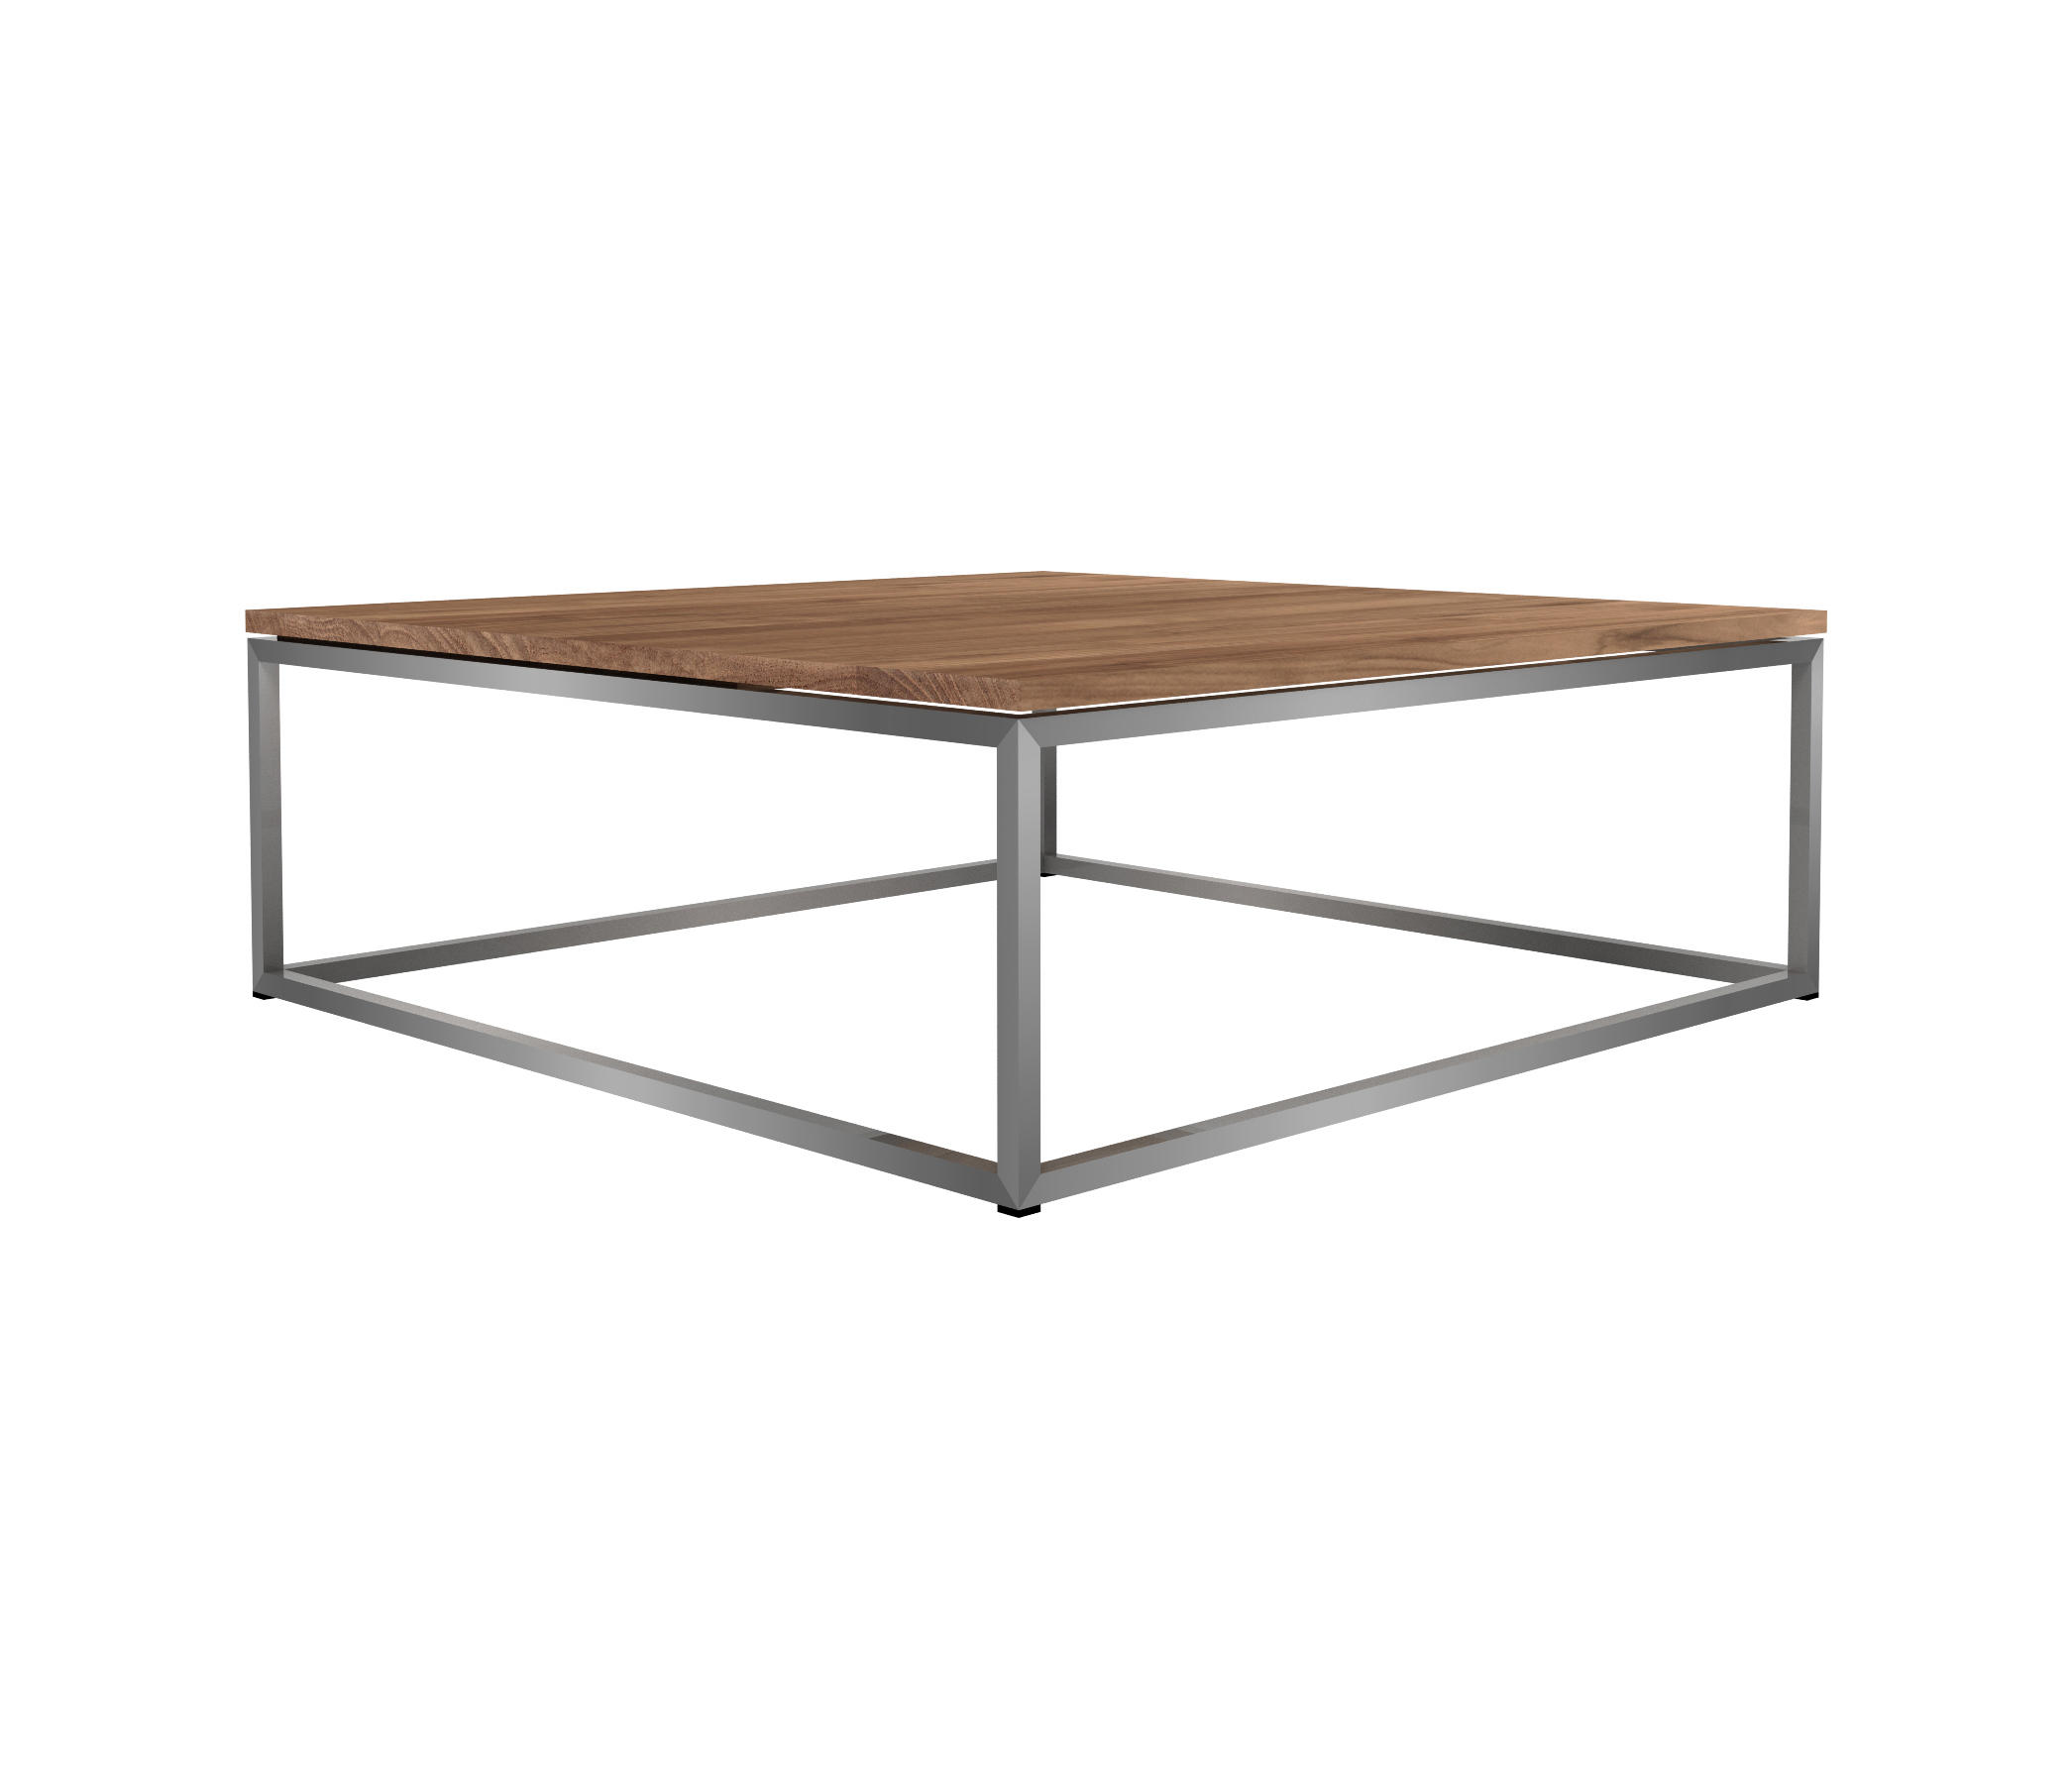 Teak Burger Coffee Table: Ethnicraft Teak Couchtisch. Moderne Couchtische Glas